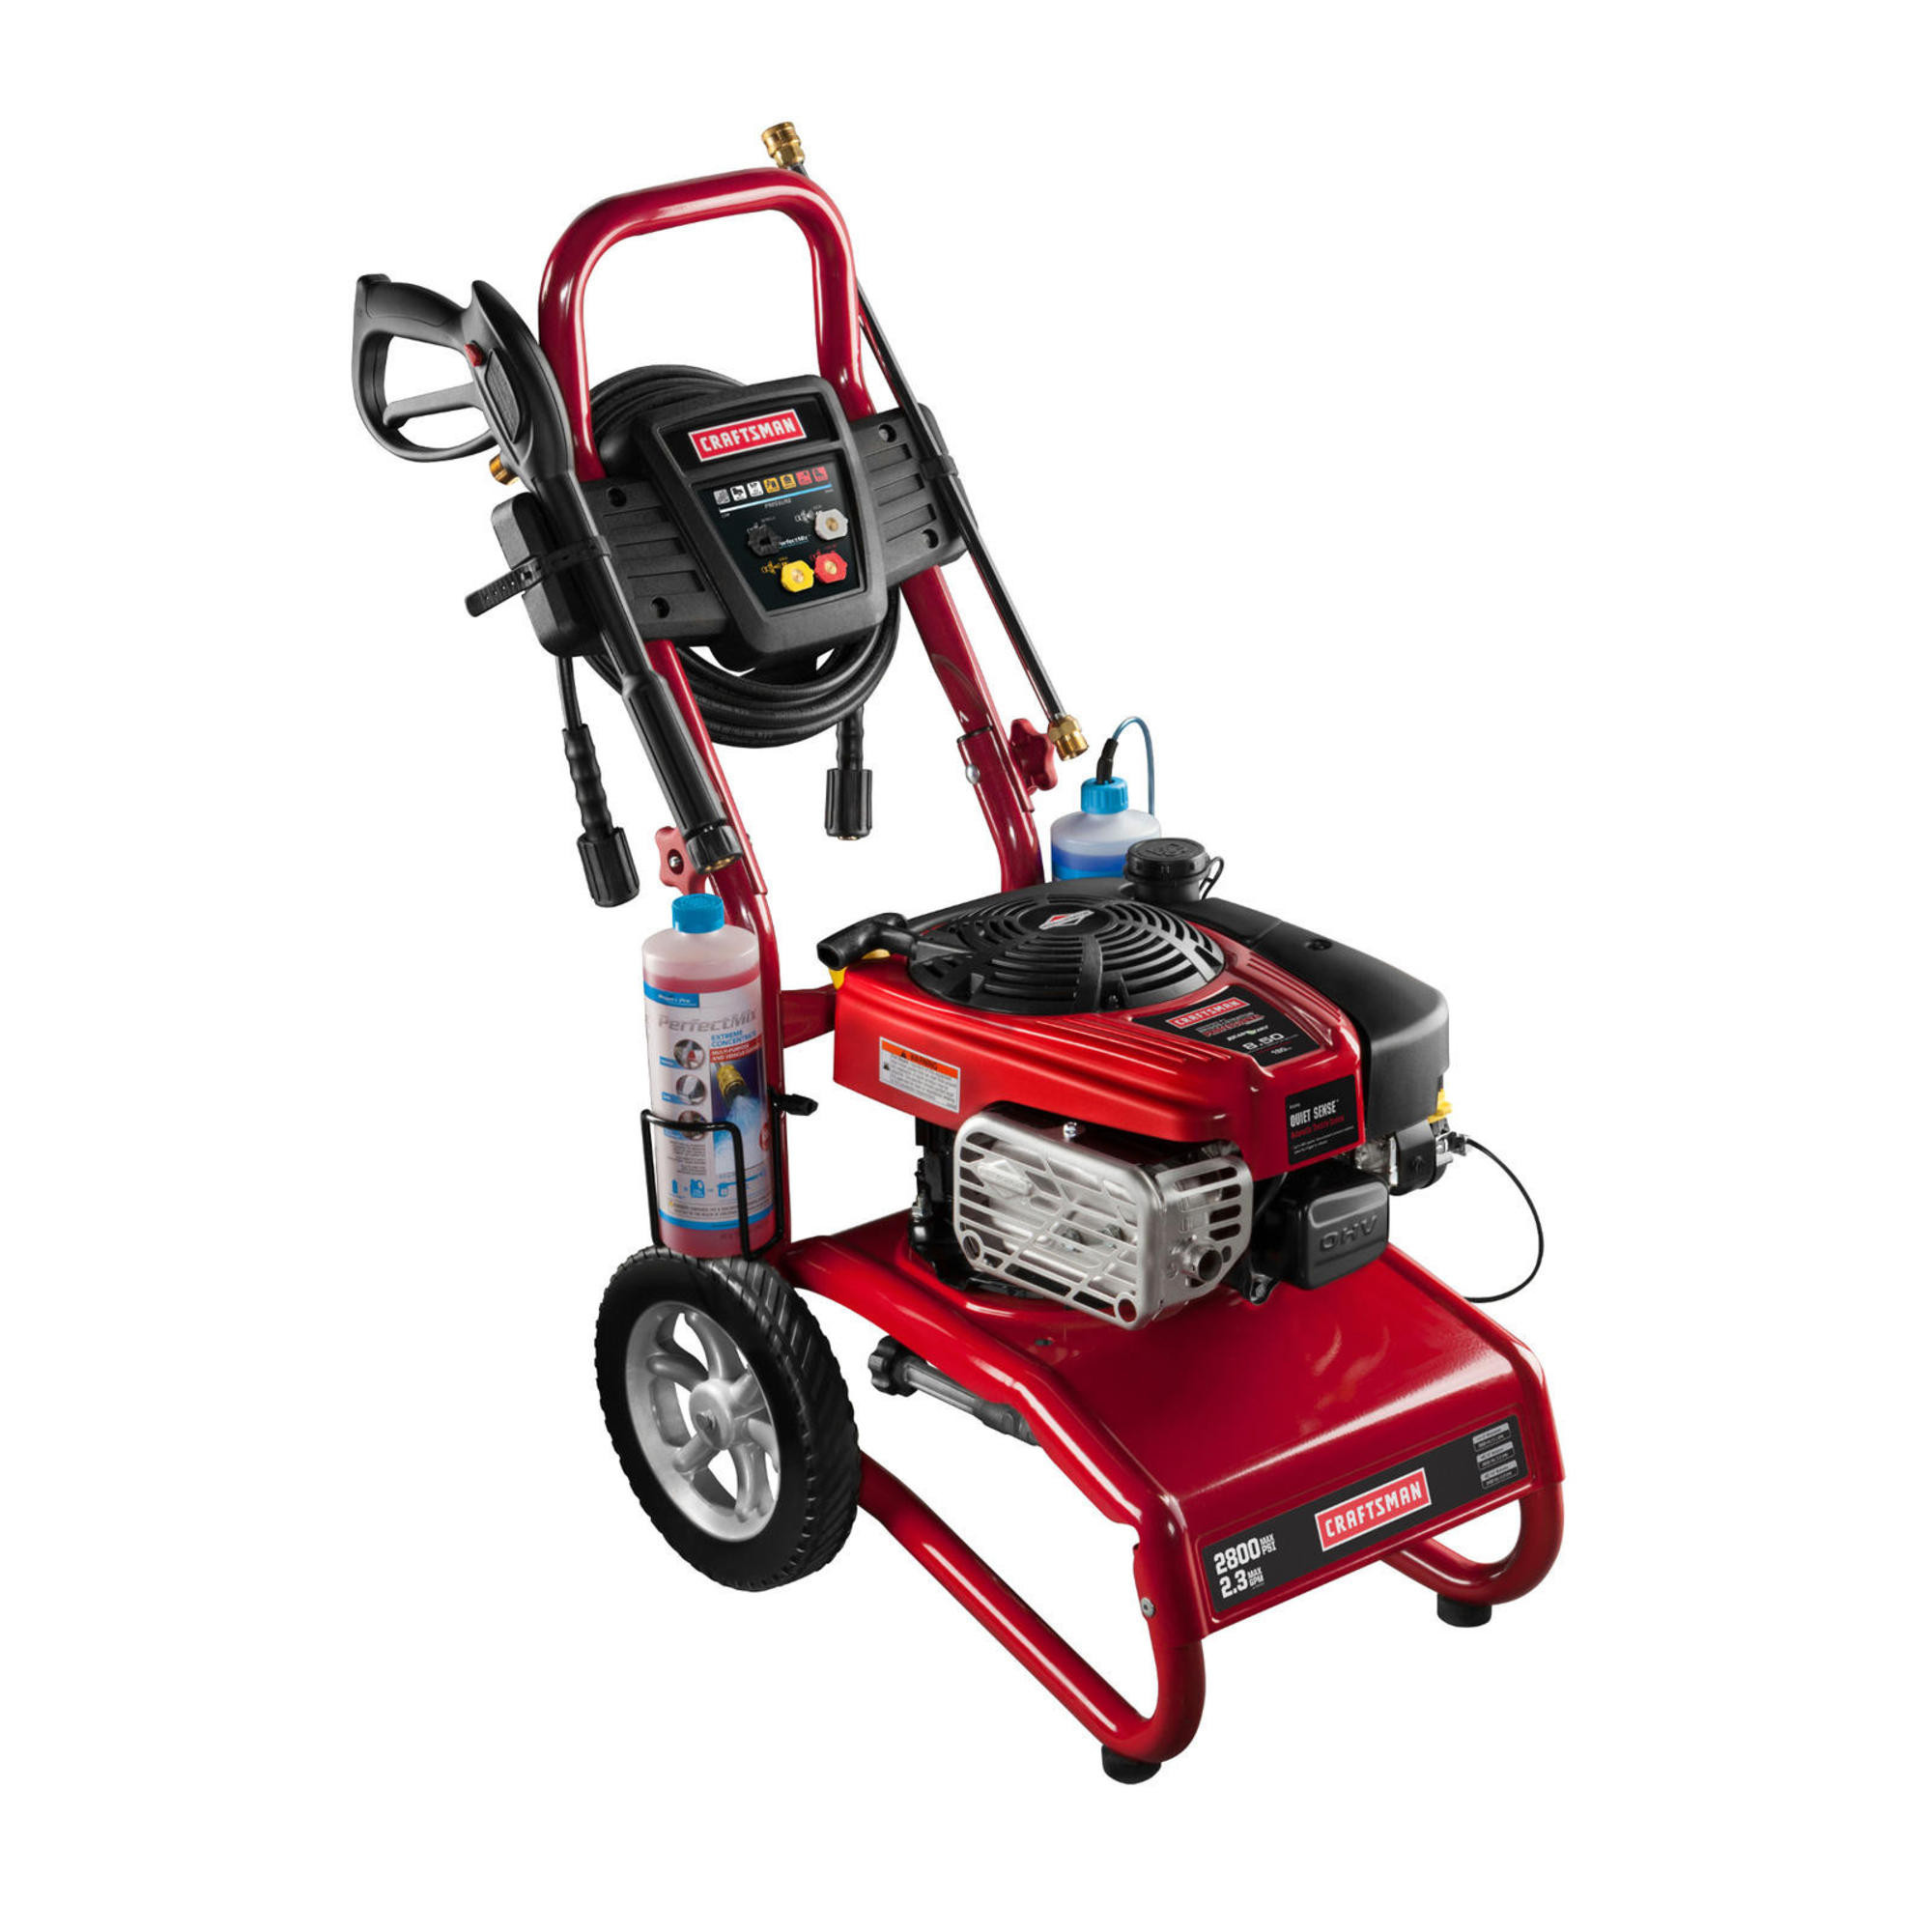 Craftsman 2800 PSI 2.3 GPM 4-Cycle Gas Powered Pressure Washer